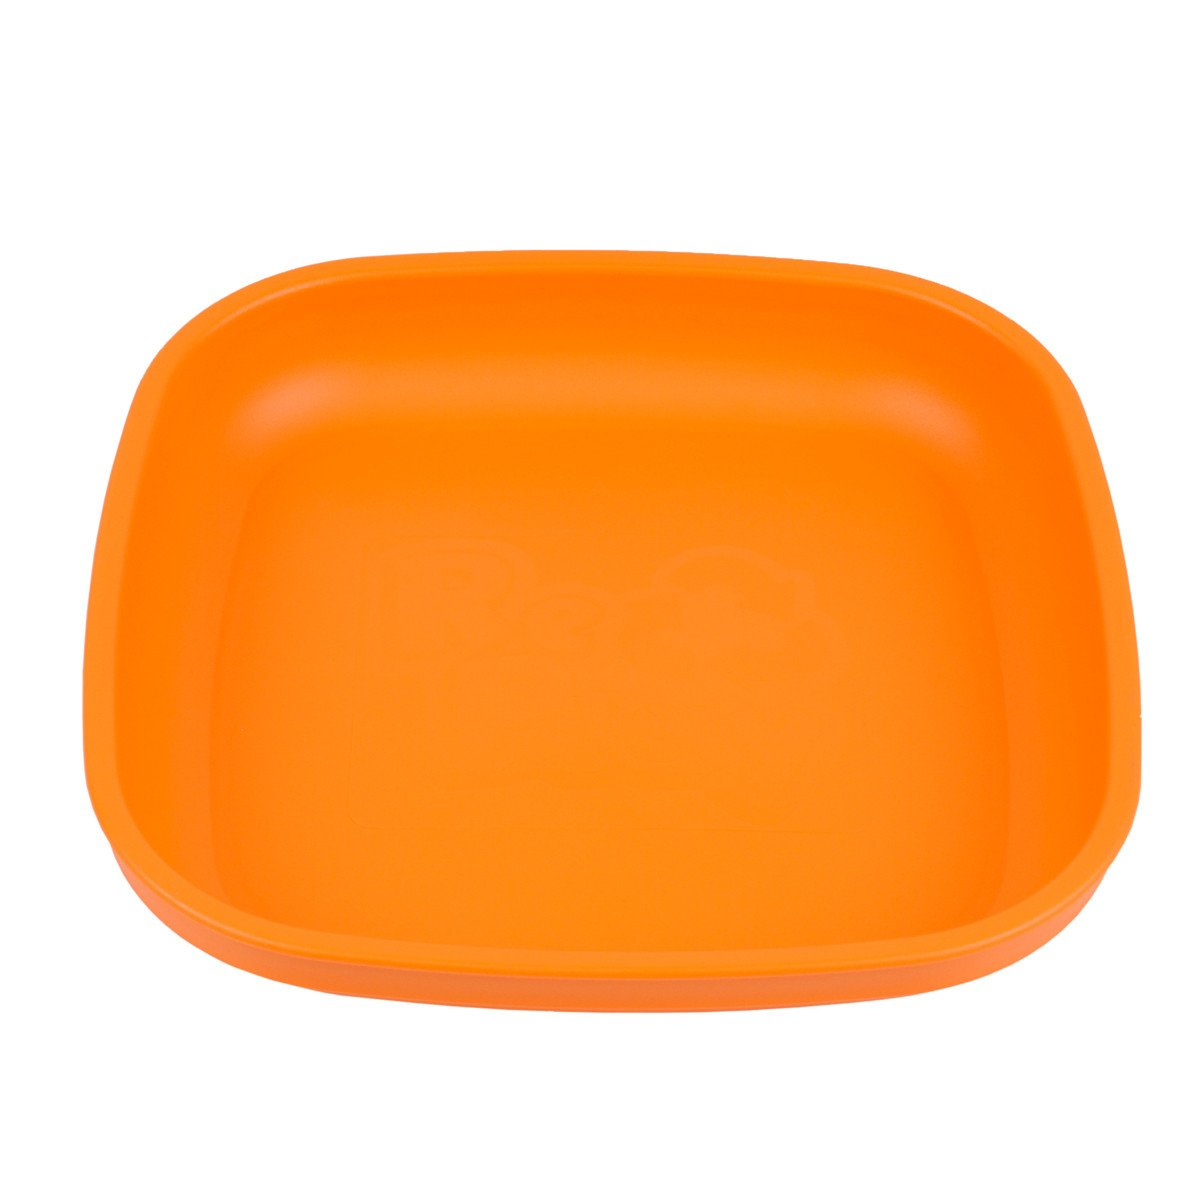 Replay Plate Replay Dinnerware Orange at Little Earth Nest Eco Shop